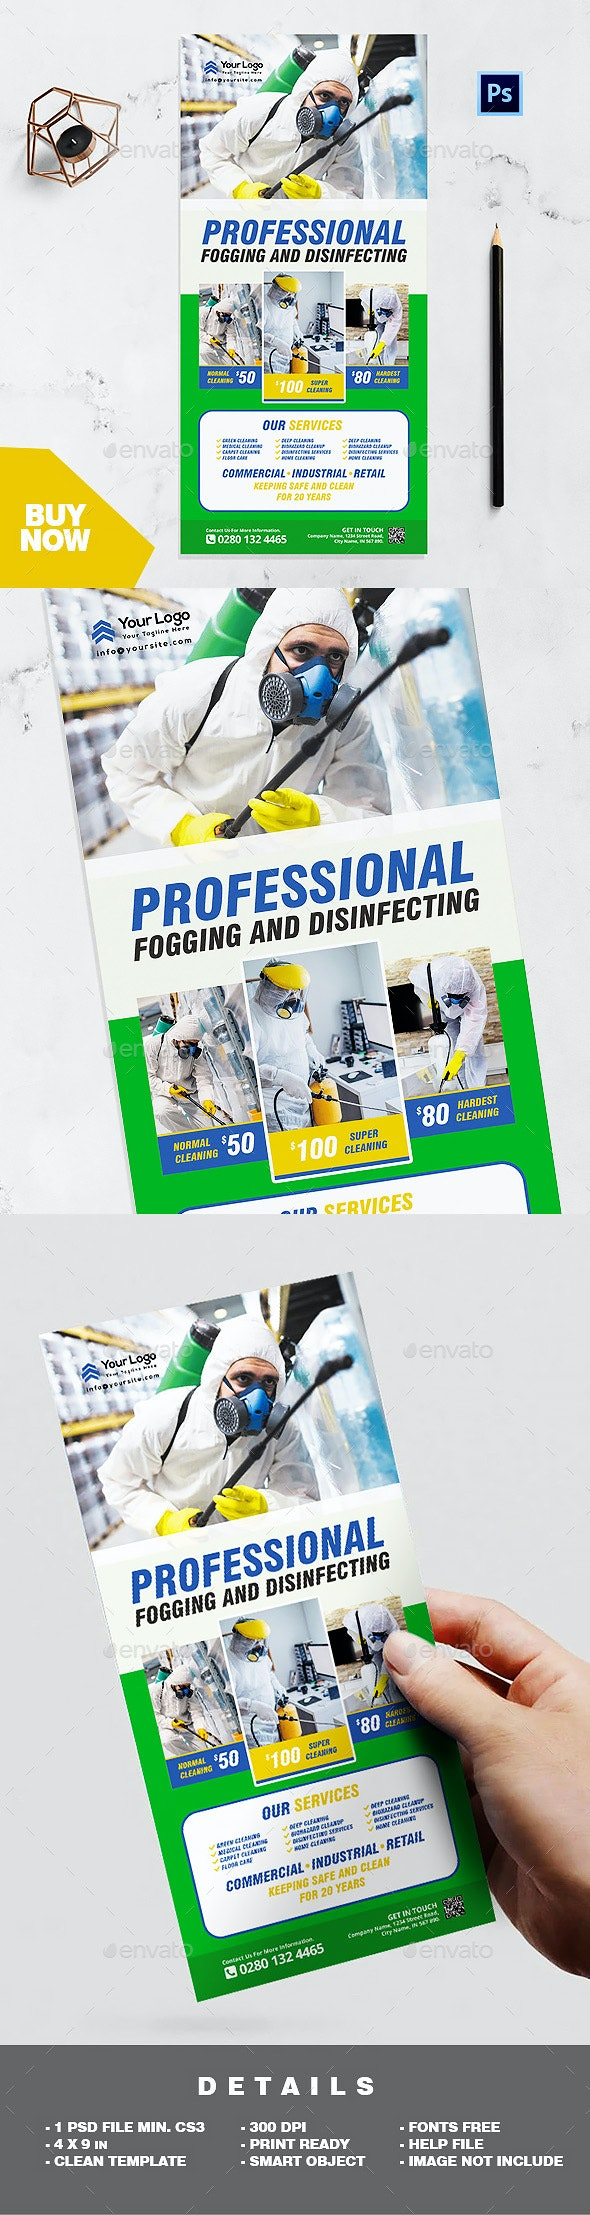 Rack Card Template - Professional Disinfecting and Cleaning Services Flyer - Corporate Flyers